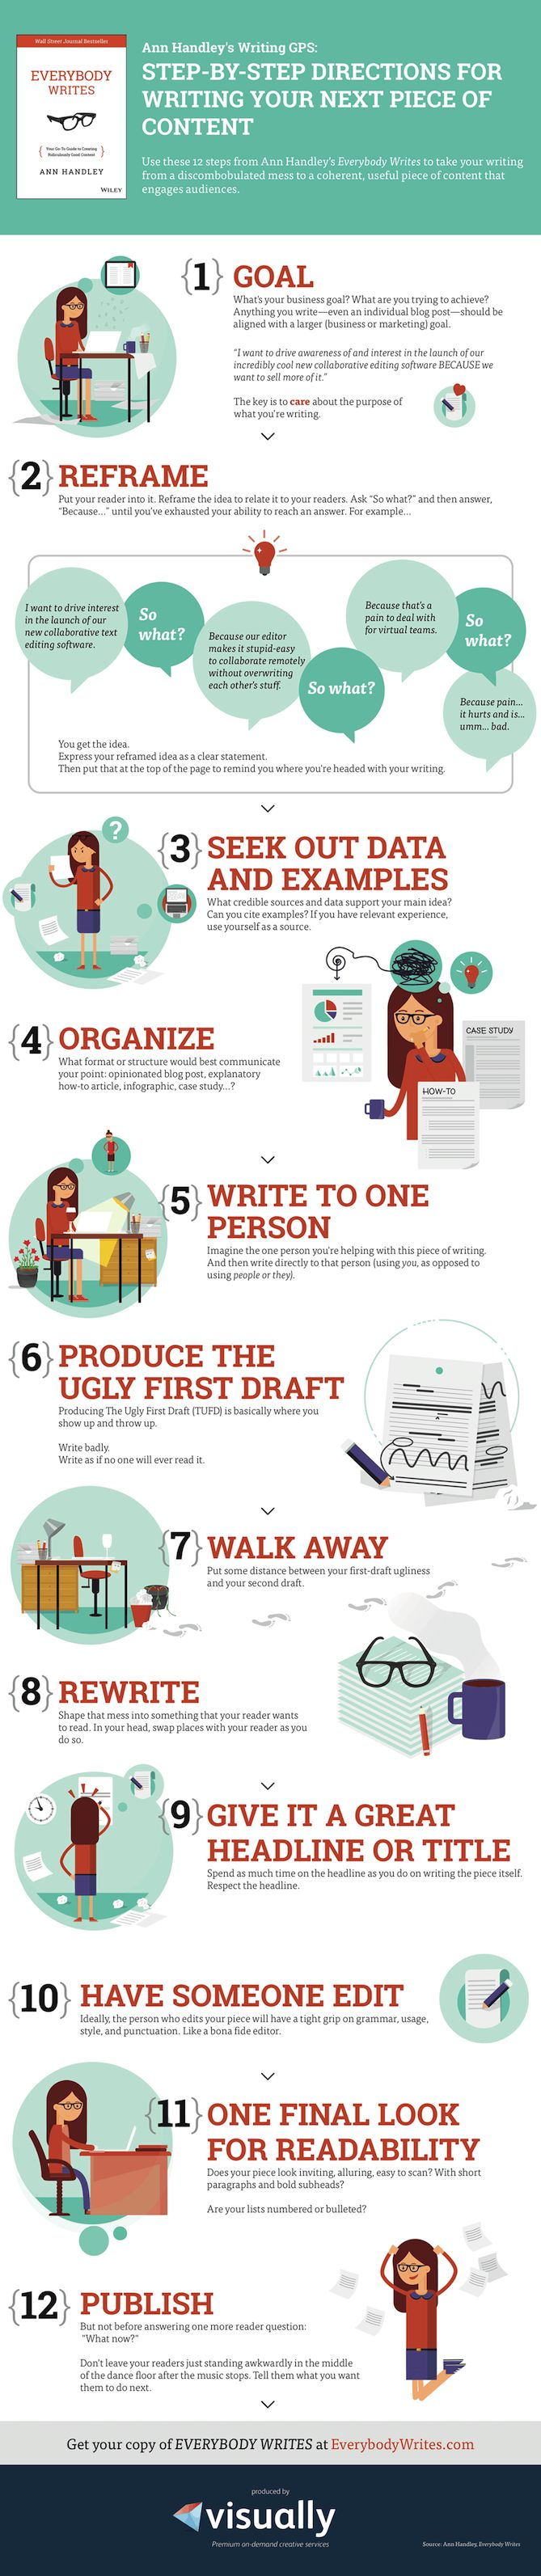 How to Create Useful Content: 12 Steps to Follow Every Time [Infographic] #content #ContentCreation #blog